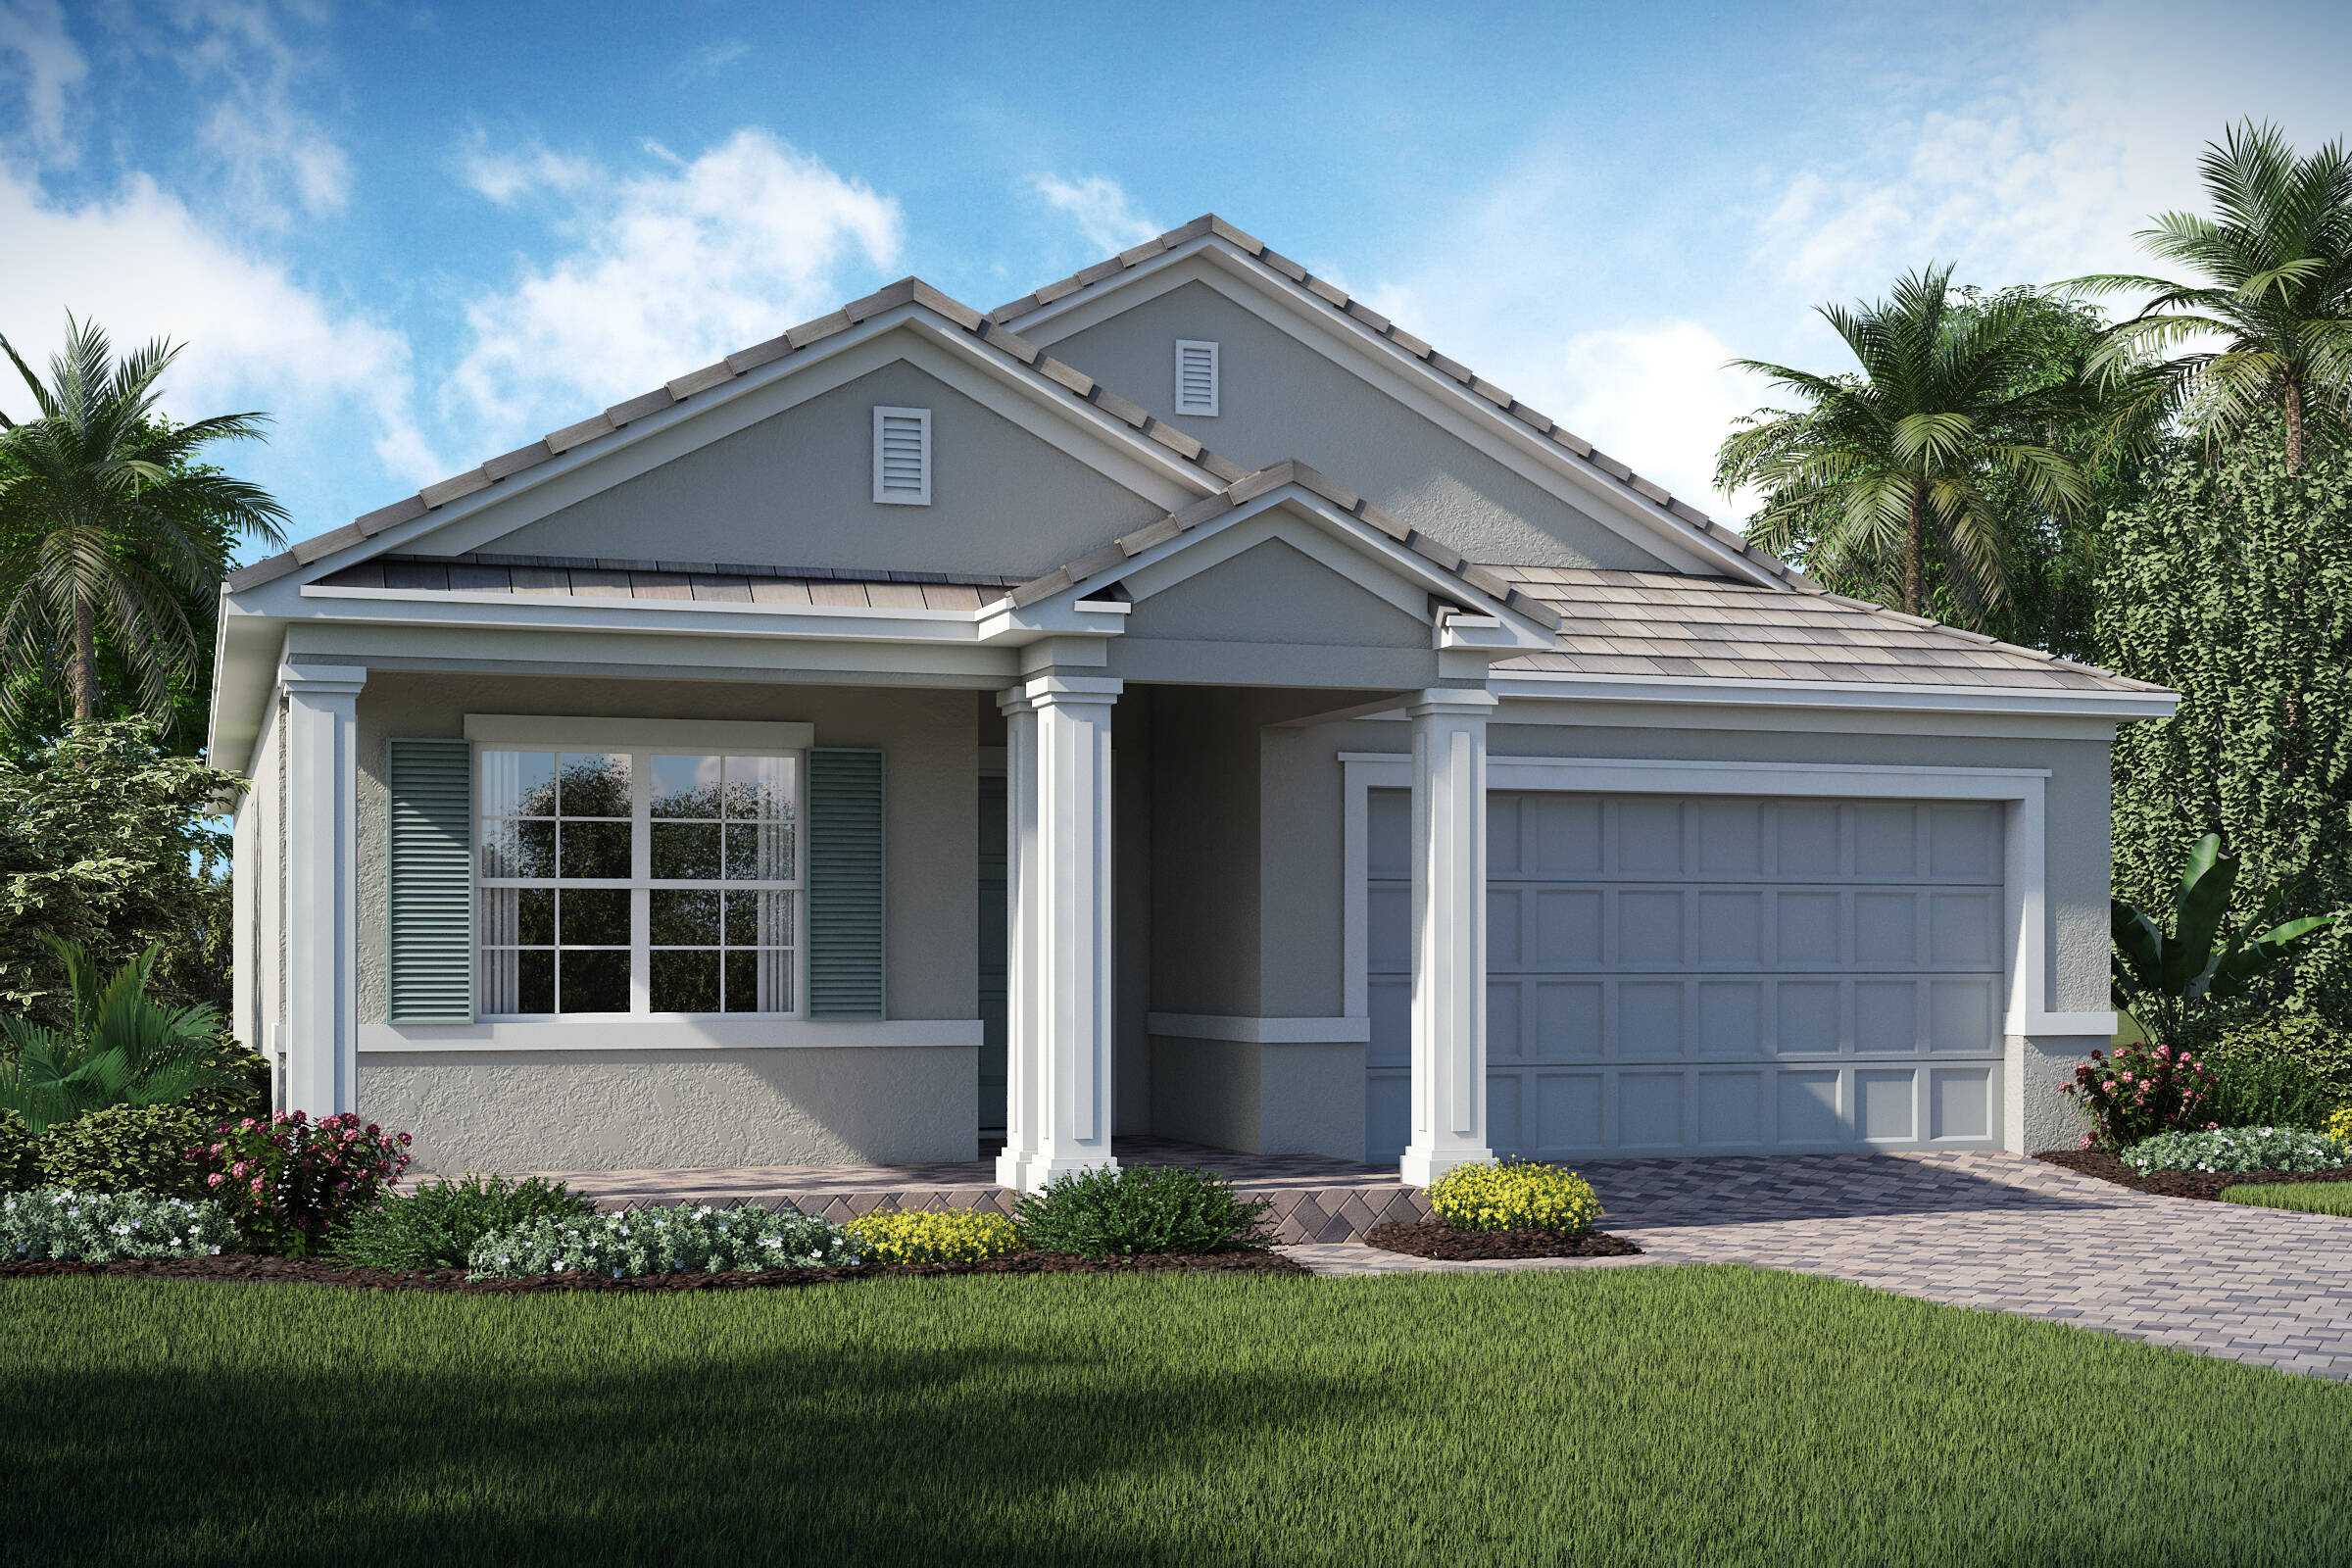 Sherrington D exterior lake florence preserve new homes in orlando florida